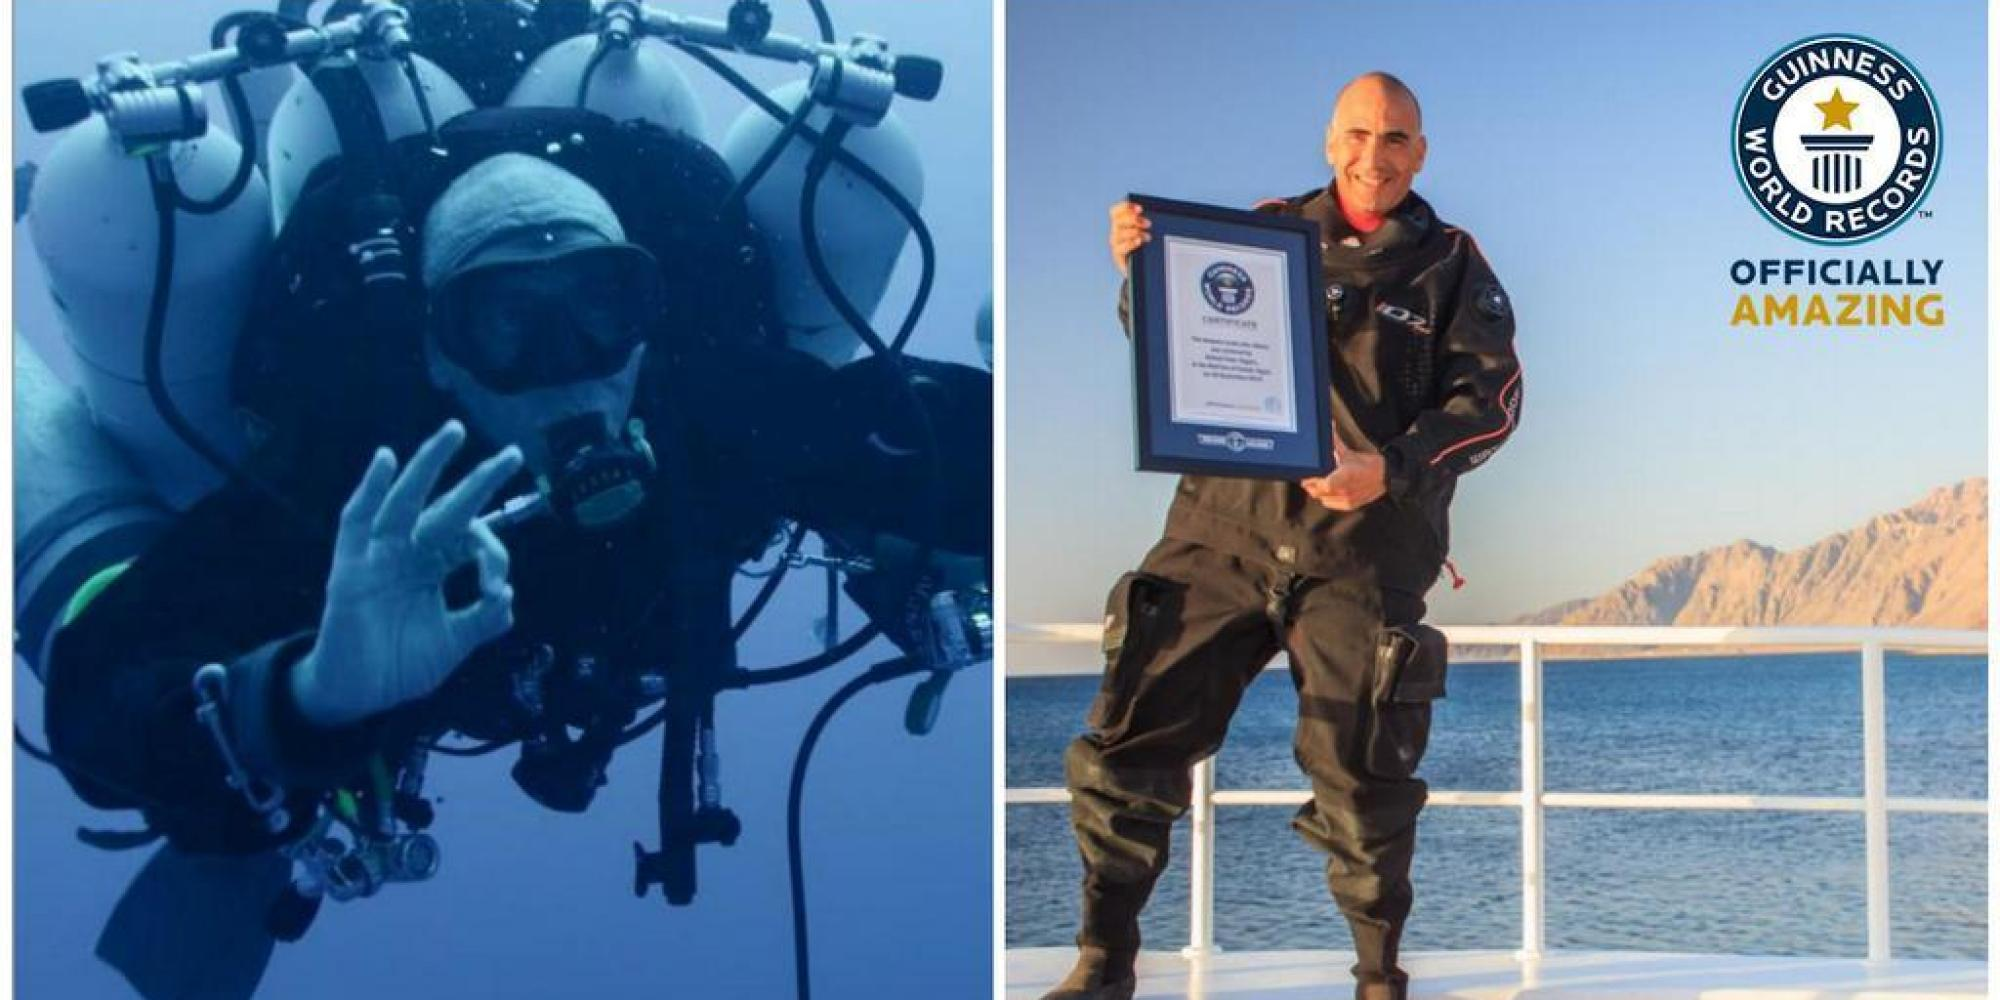 Man Sets New World Record For Deepest Scuba Dive After